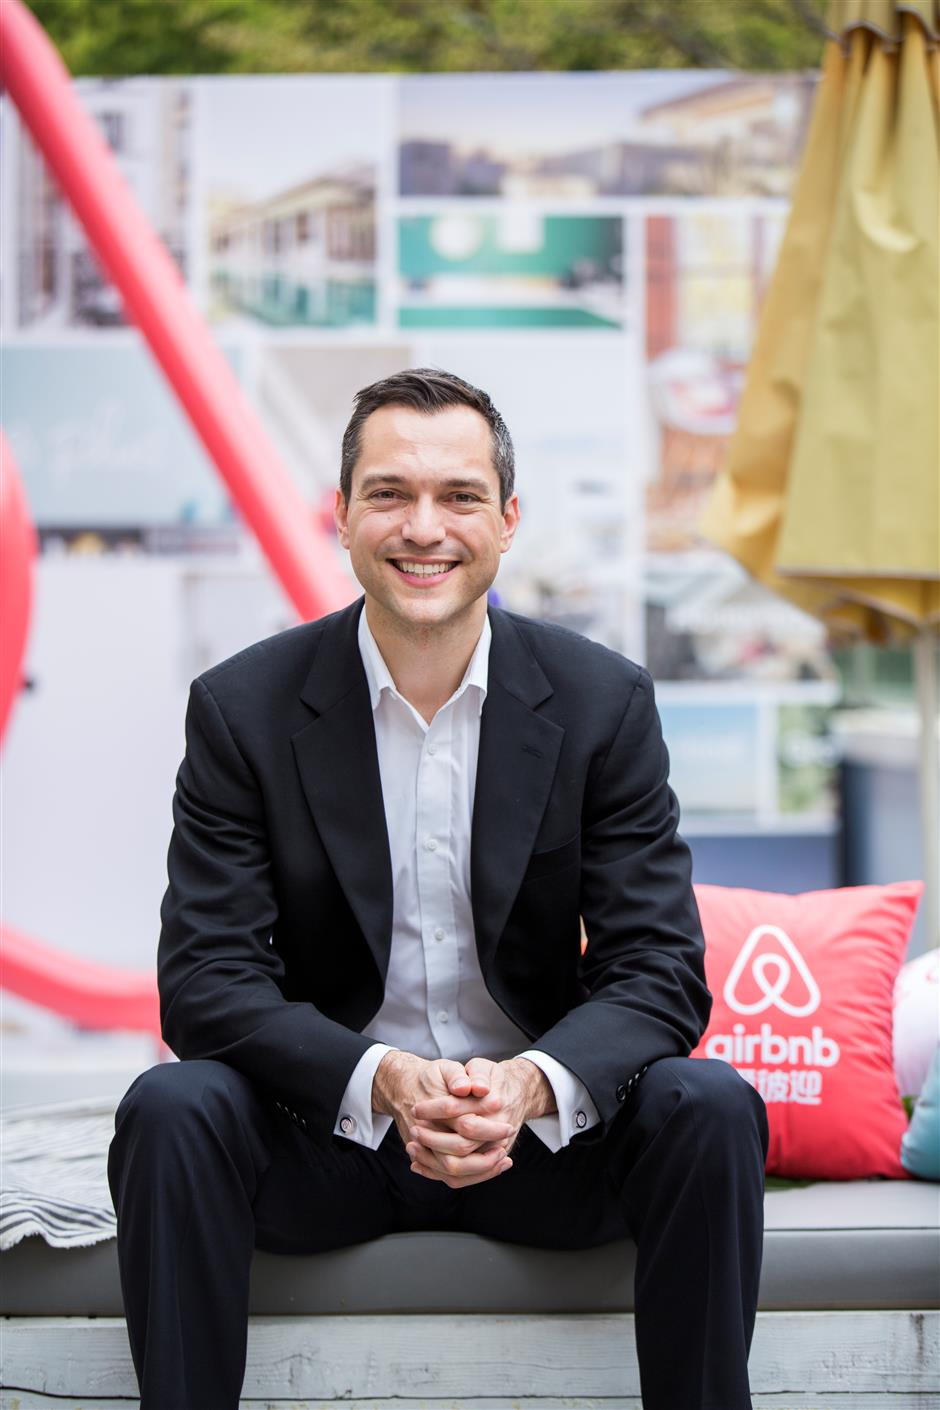 Airbnb set to raise investment in China to cater to domestic travelers